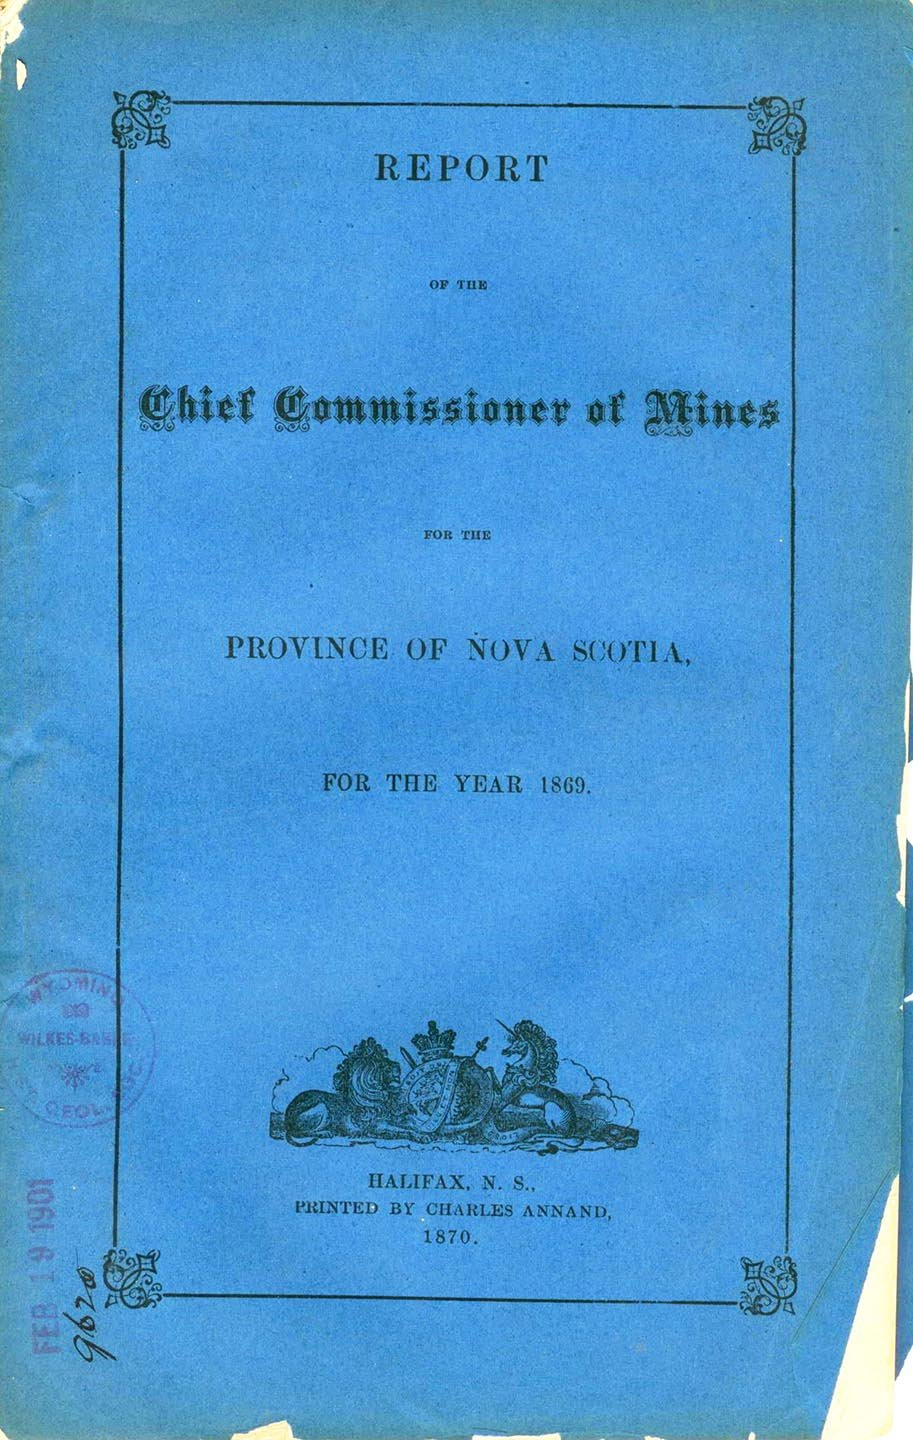 Report of the Chief Commissioner of Mines for the Province of Nova Scotia For the Year 1869